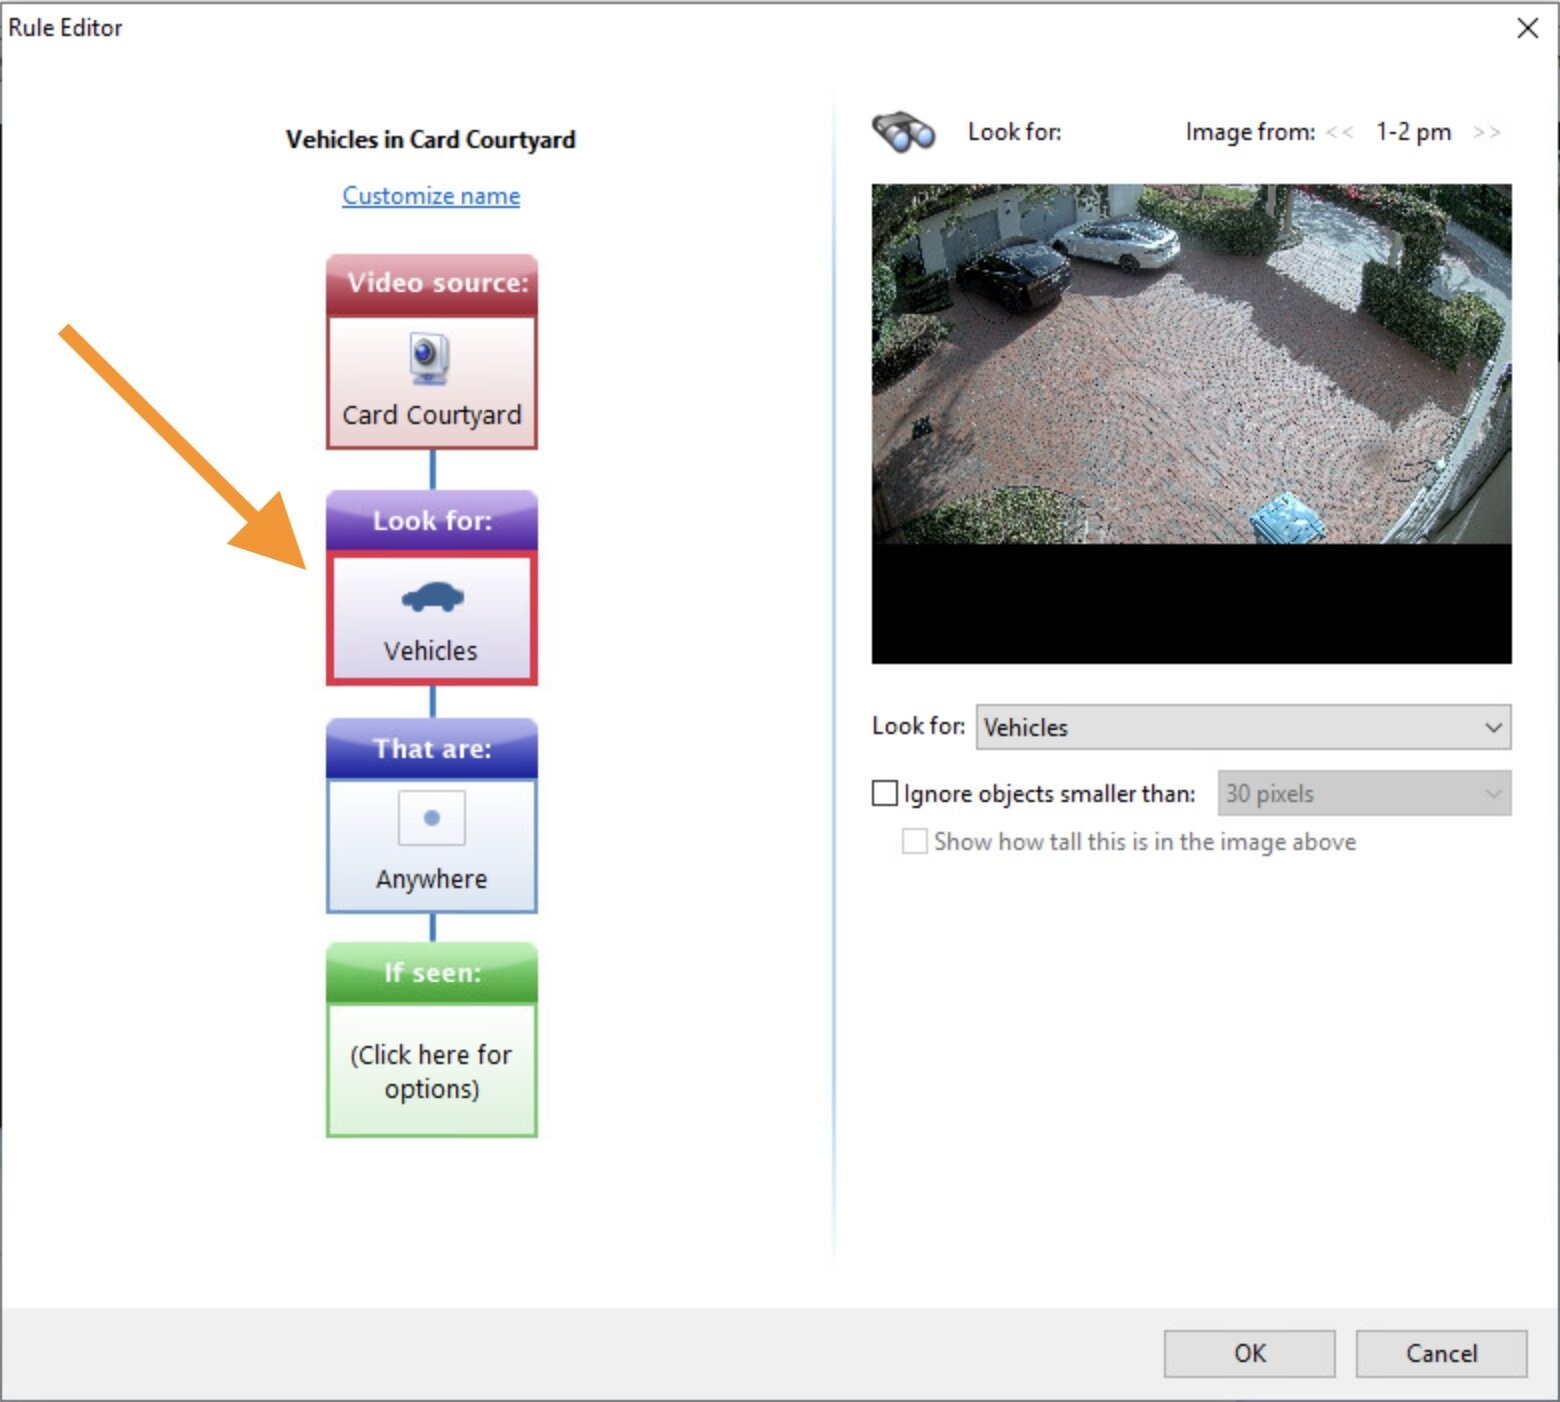 Screenshot from Sighthound Video 6.0 showing Vehicle rules -